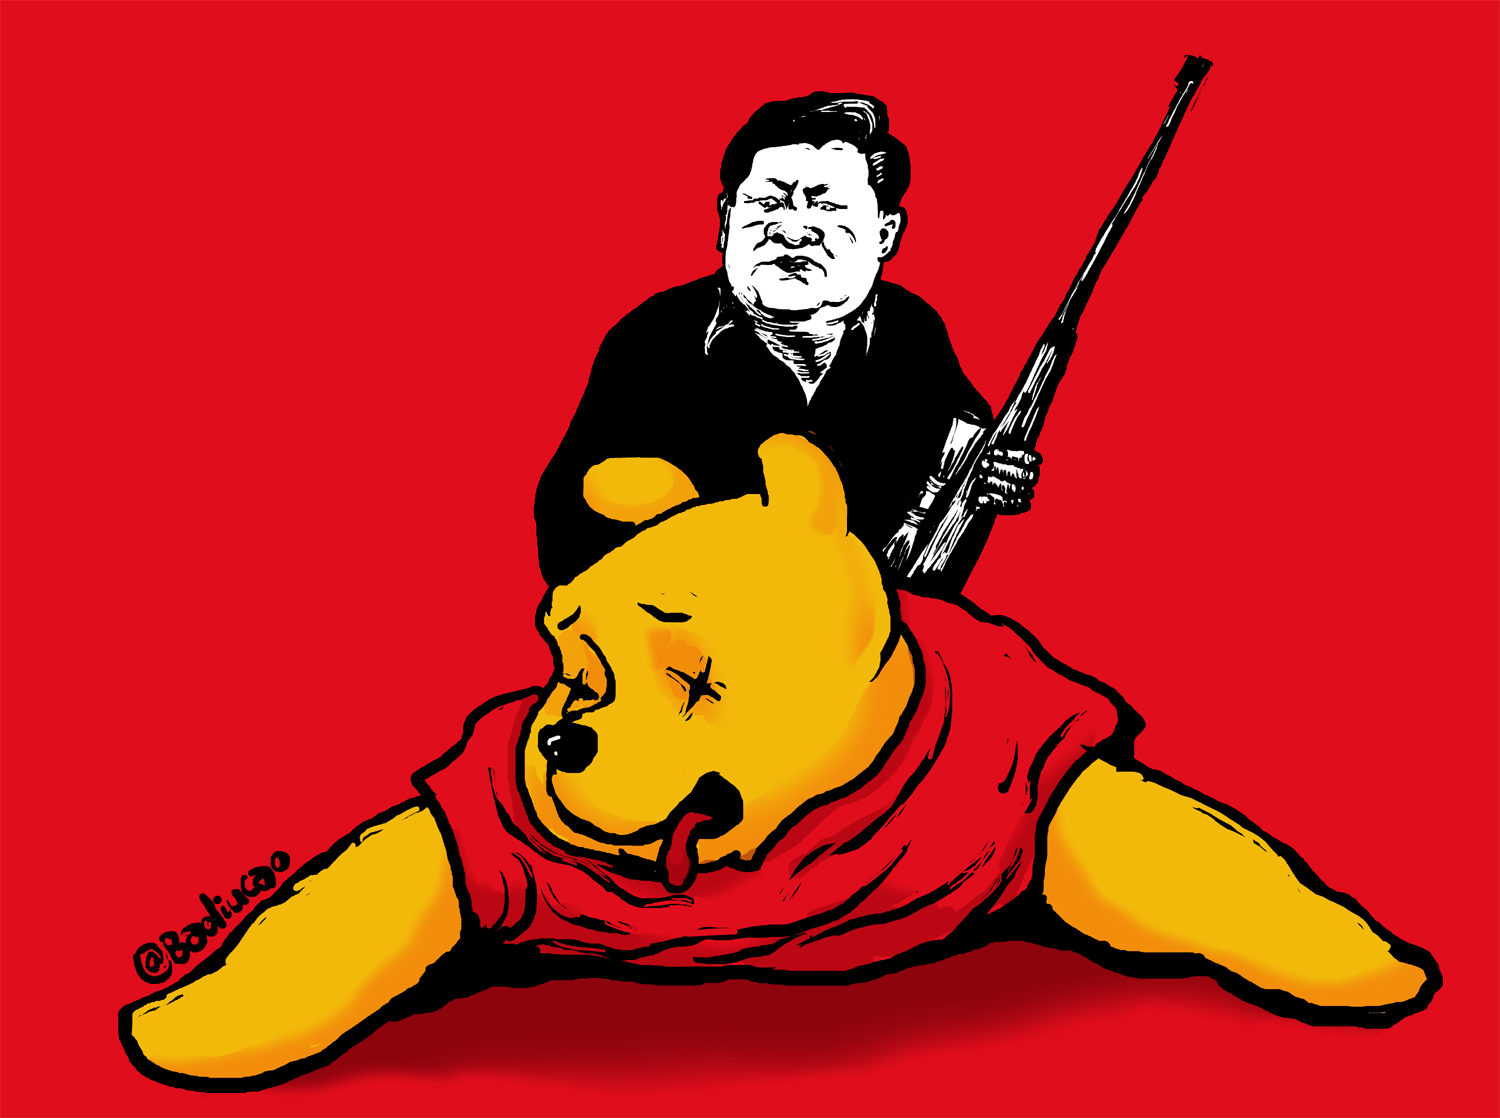 Xi's going on a bear hunt